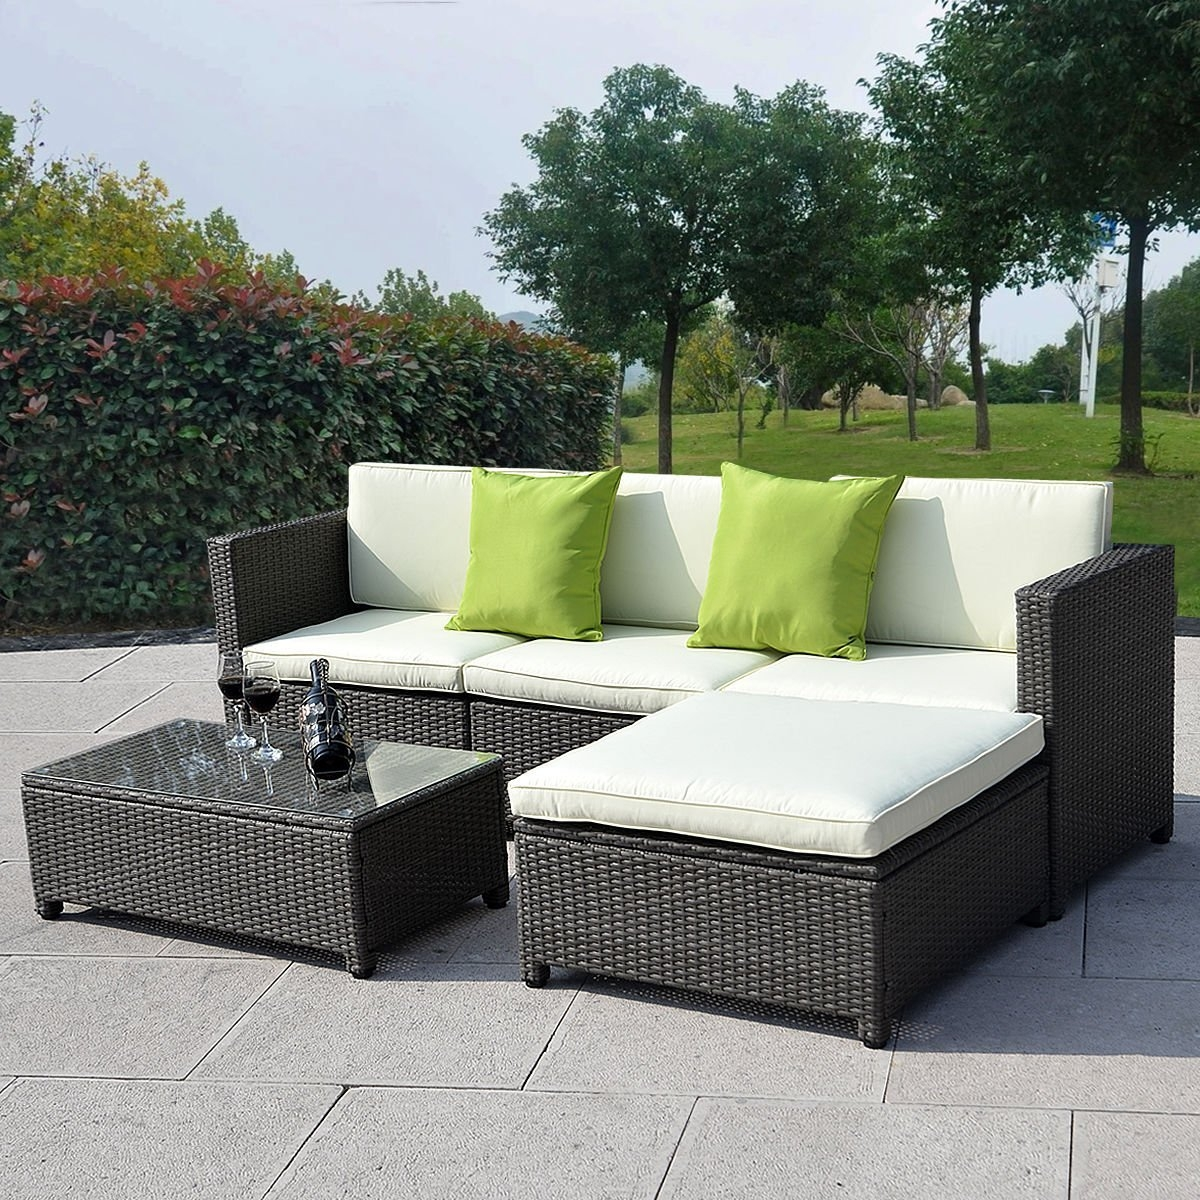 Stunning Patio Furniture Sofa Photos Design Ideas Collections Intended For Outdoor Sofa Chairs (Image 14 of 15)